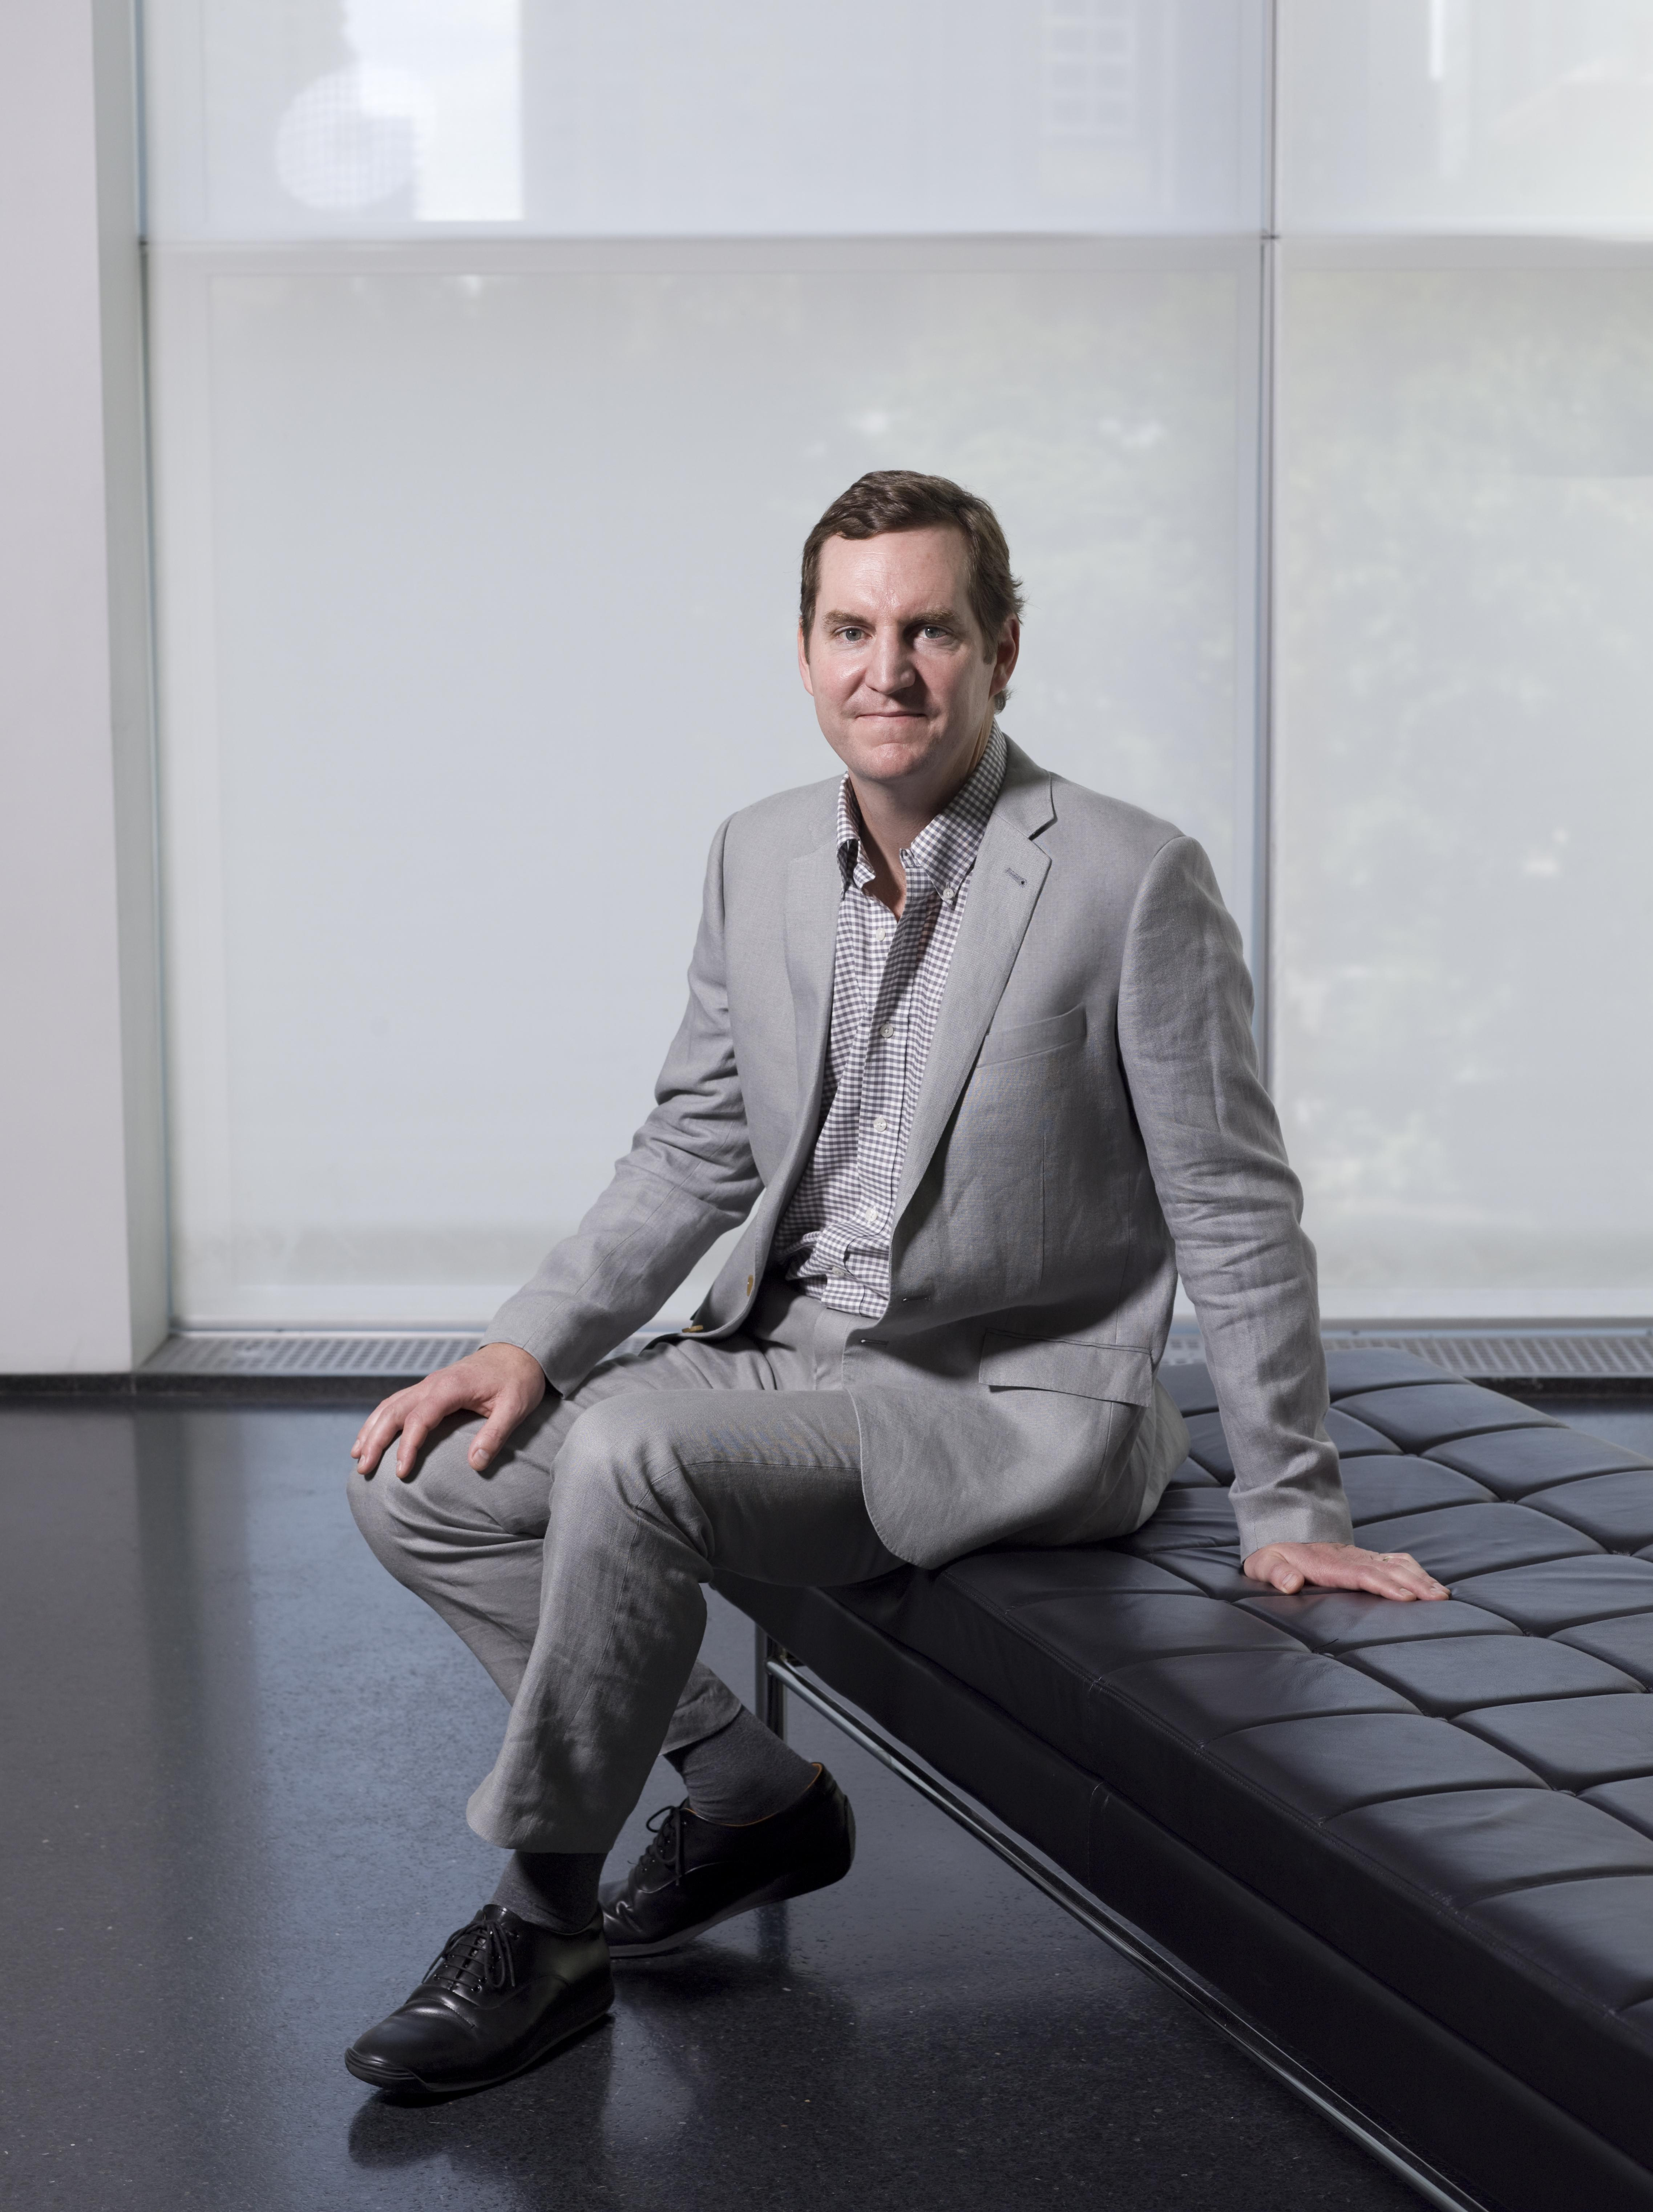 A tall, dark-haired, clean-shaven white man wearing a grey suit and gingham checkered shirt sits on a black leather bench in the MCA's lobby.